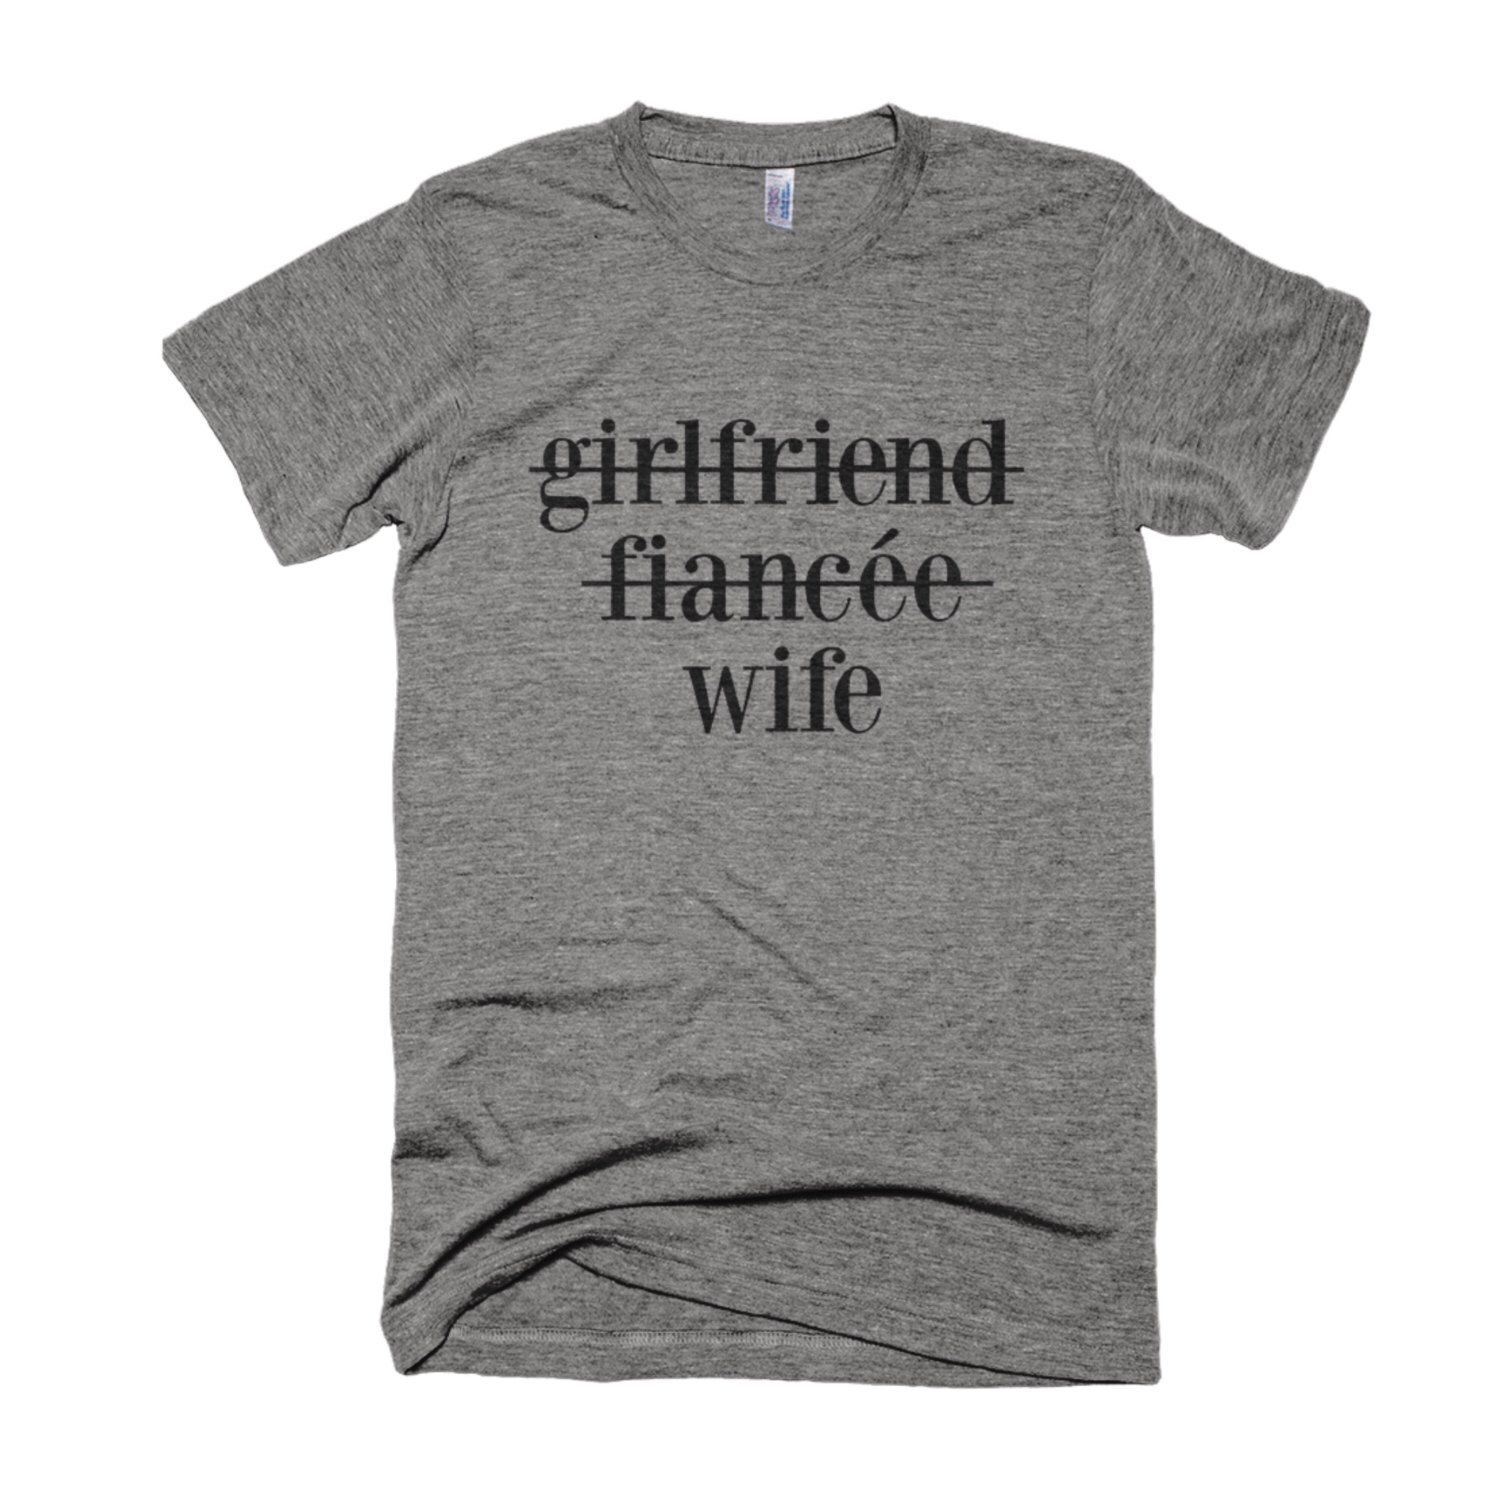 Friend Fiancee Wife Shirt Wifey Wedding Honeymoon Graphic Typography Gift By Eastandwillow On Etsy